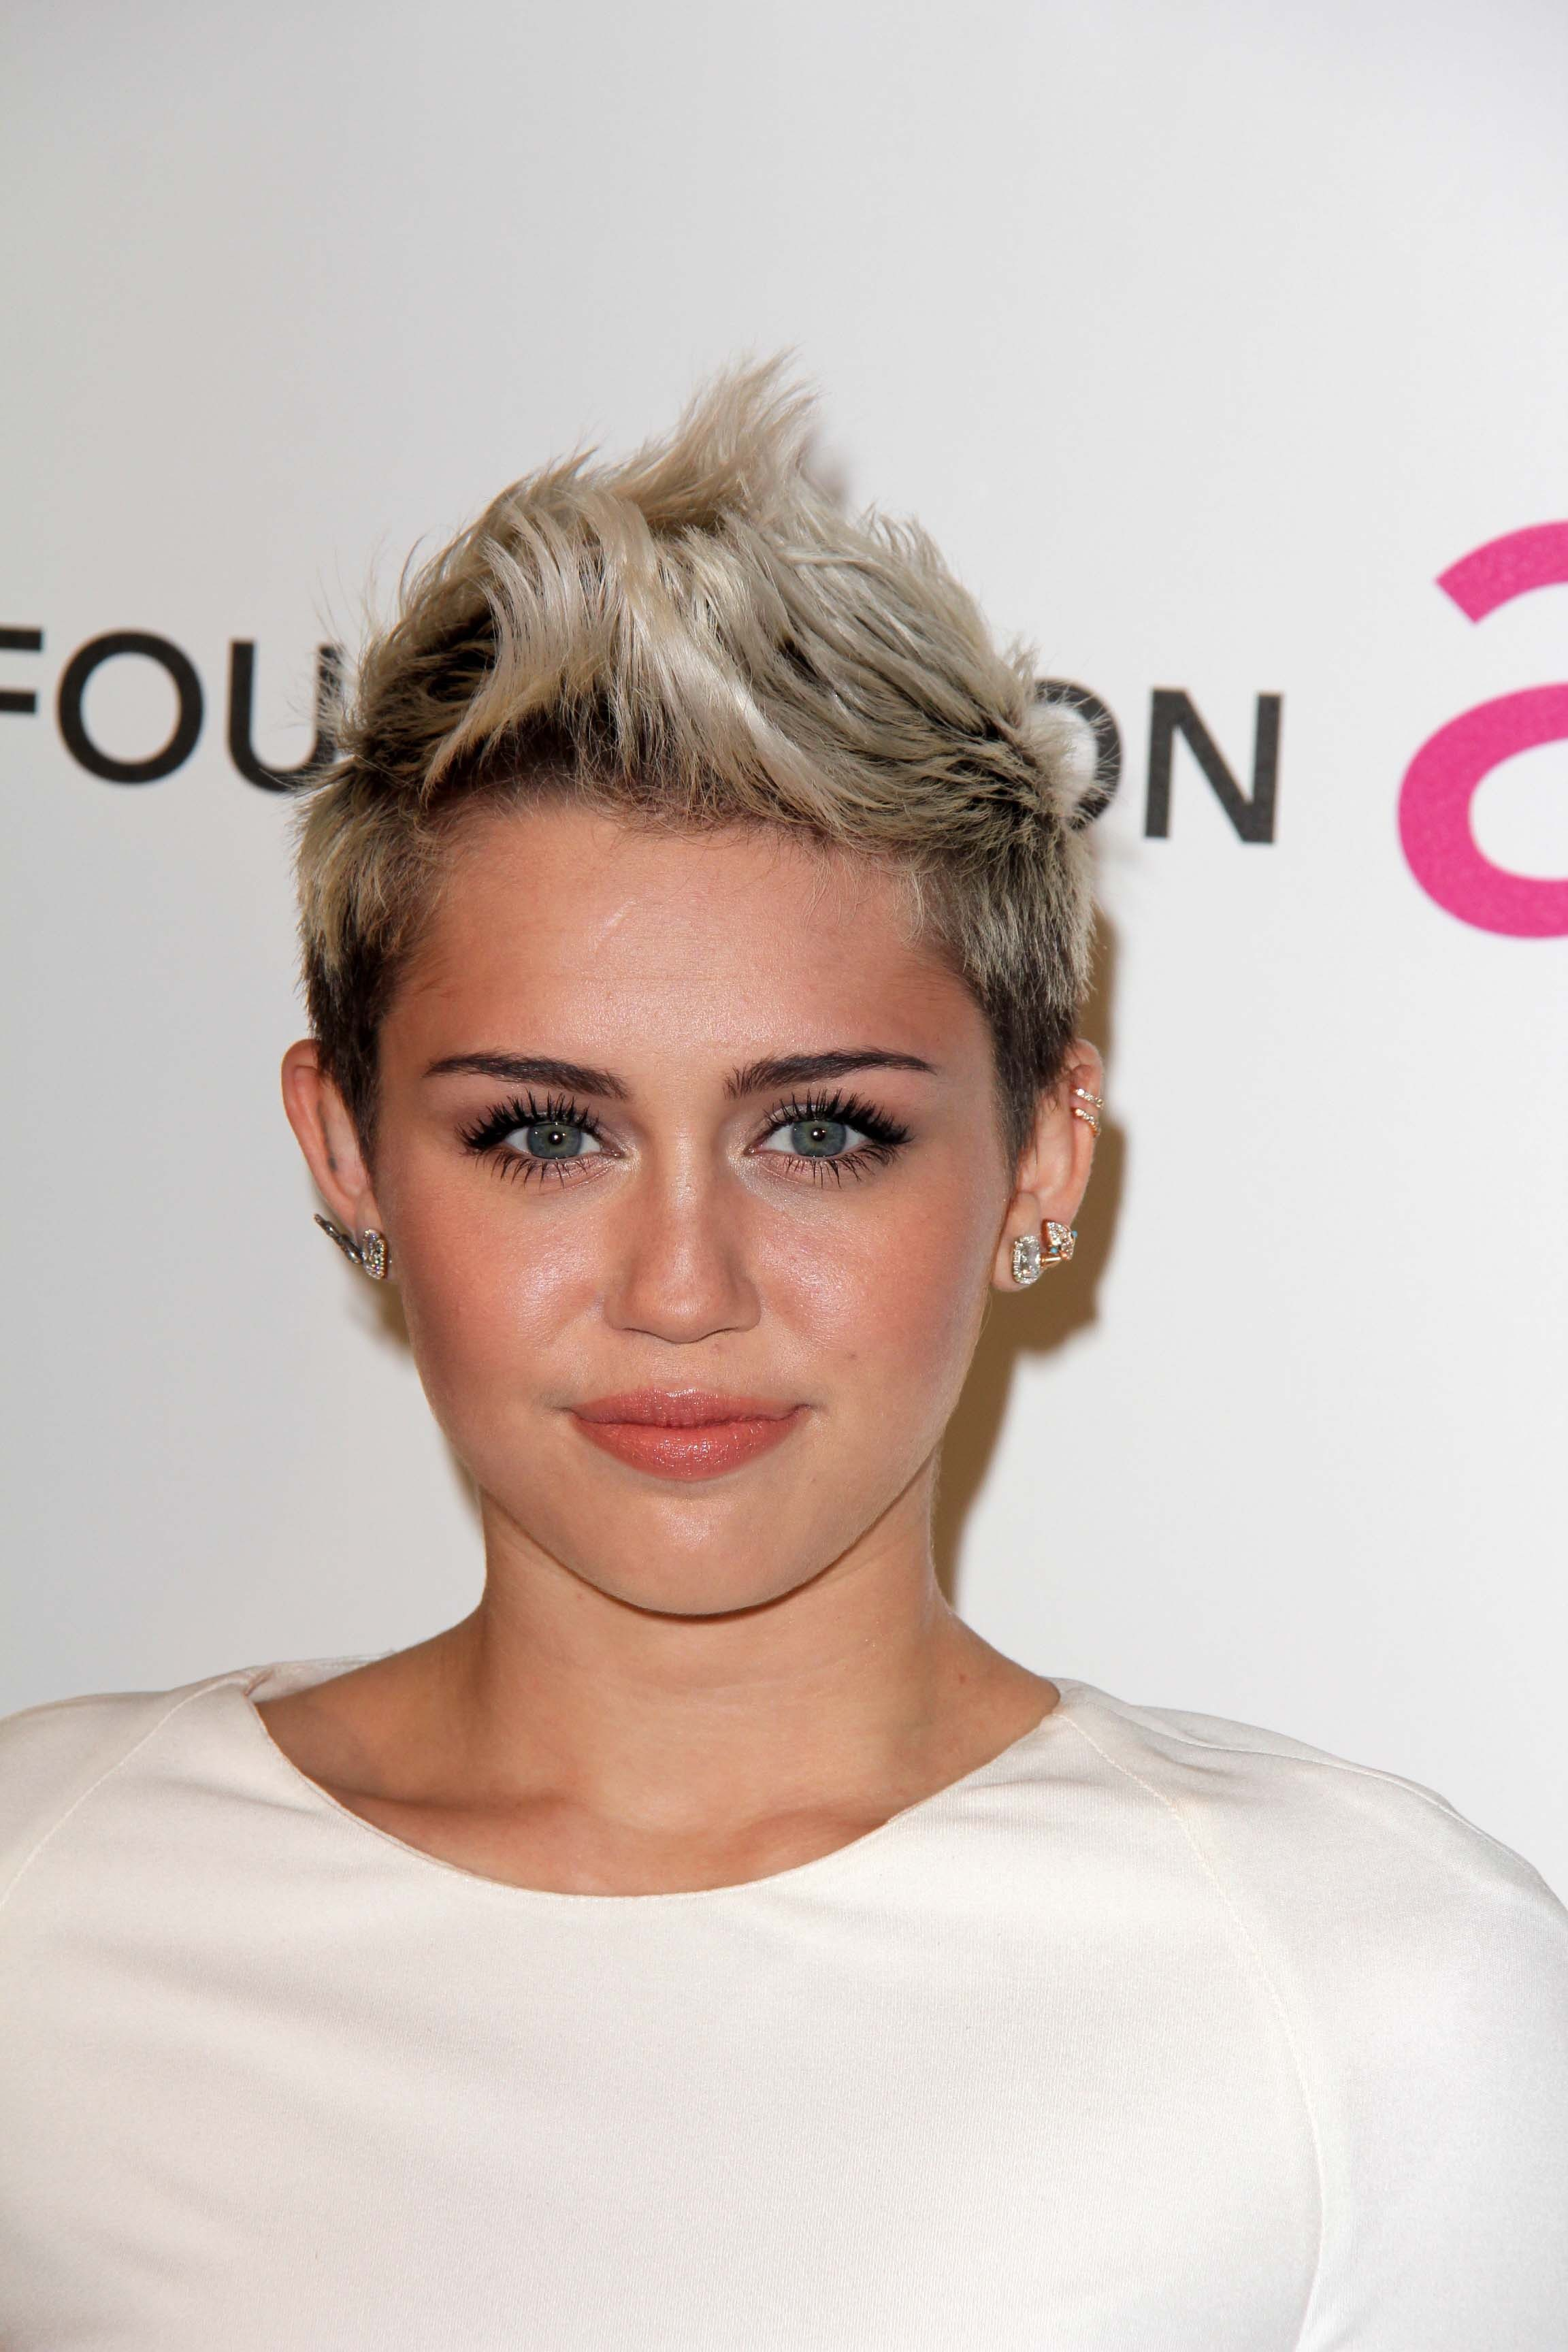 Miley Cyrus' Silver Faux Hawk with Dark Roots